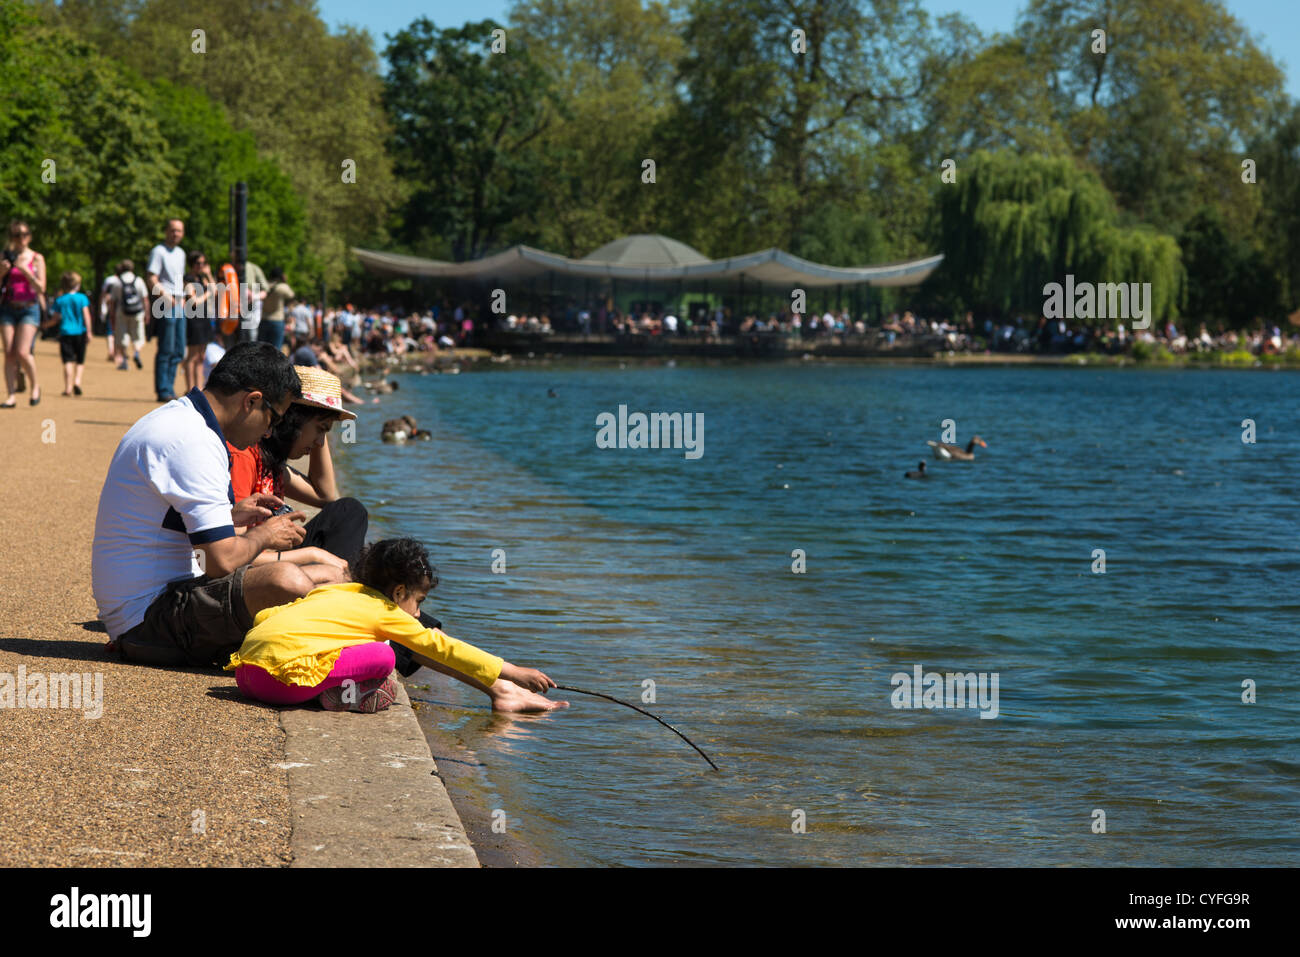 Visitors to Hyde park's Serpentine, London, England. - Stock Image